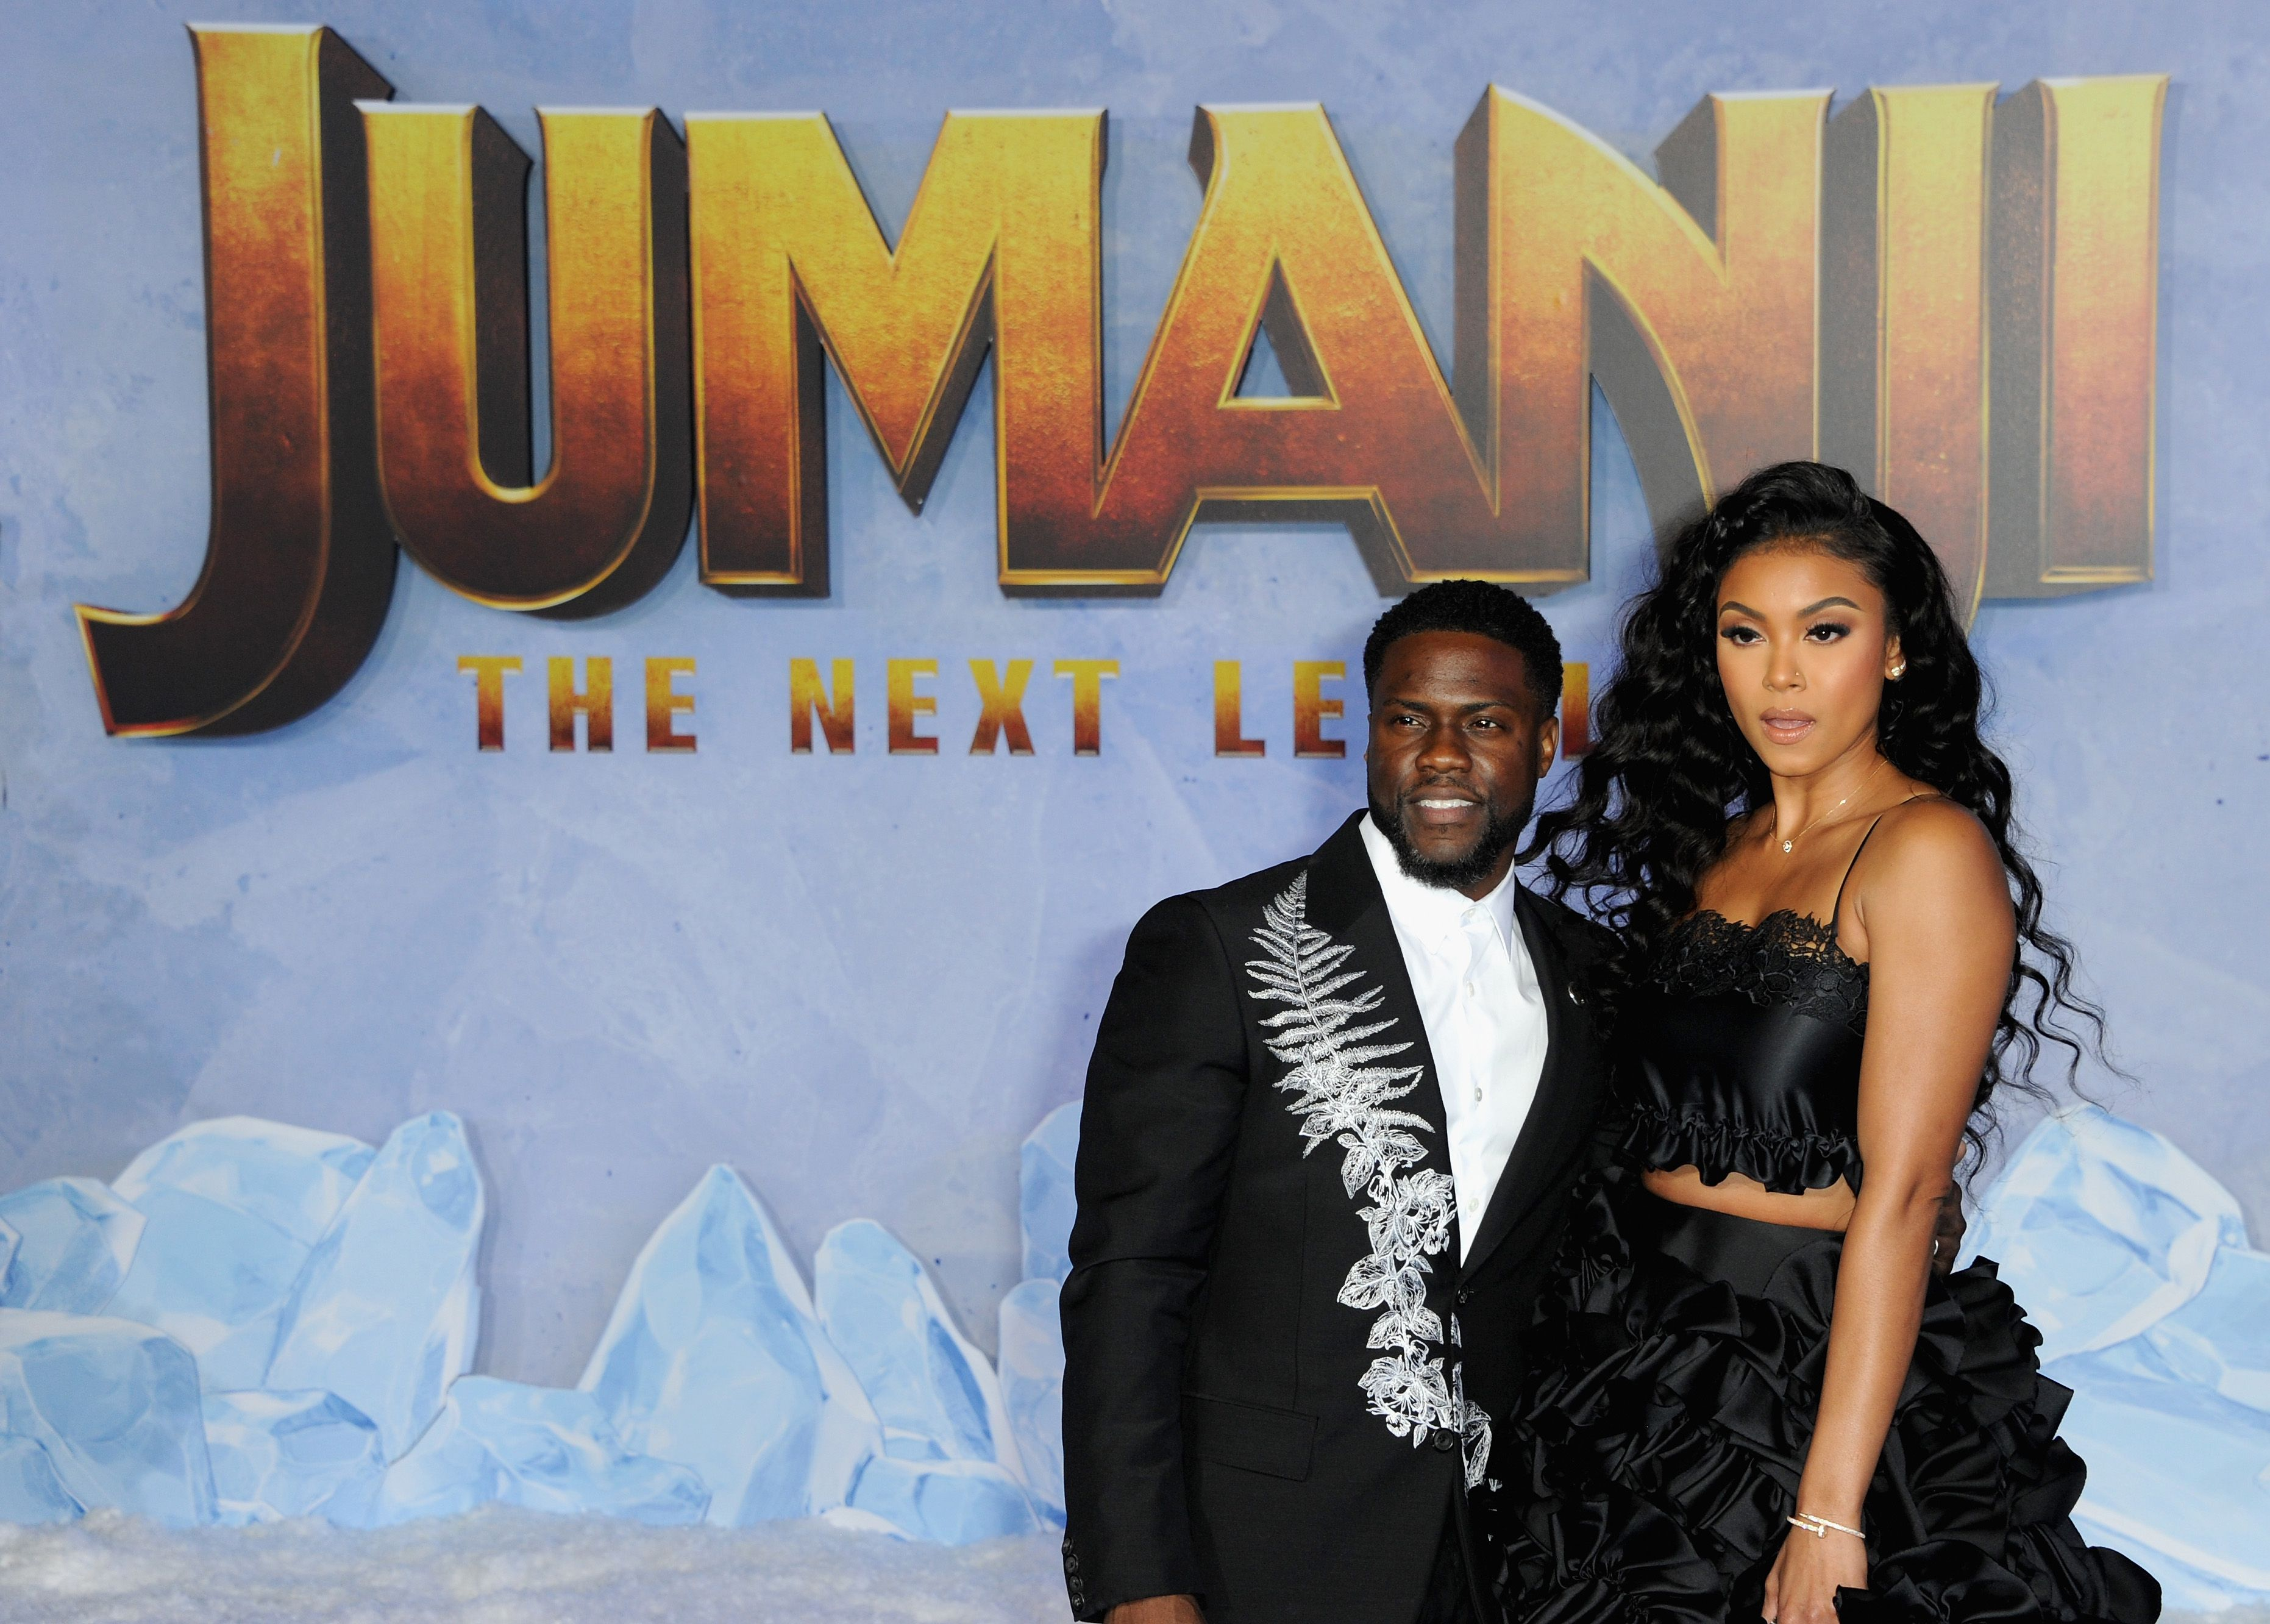 """Kevin Hart and wife Eniko Parrish at the premiere of """"Jumanji: The Next Level"""" in December 2019 in Hollywood, California 